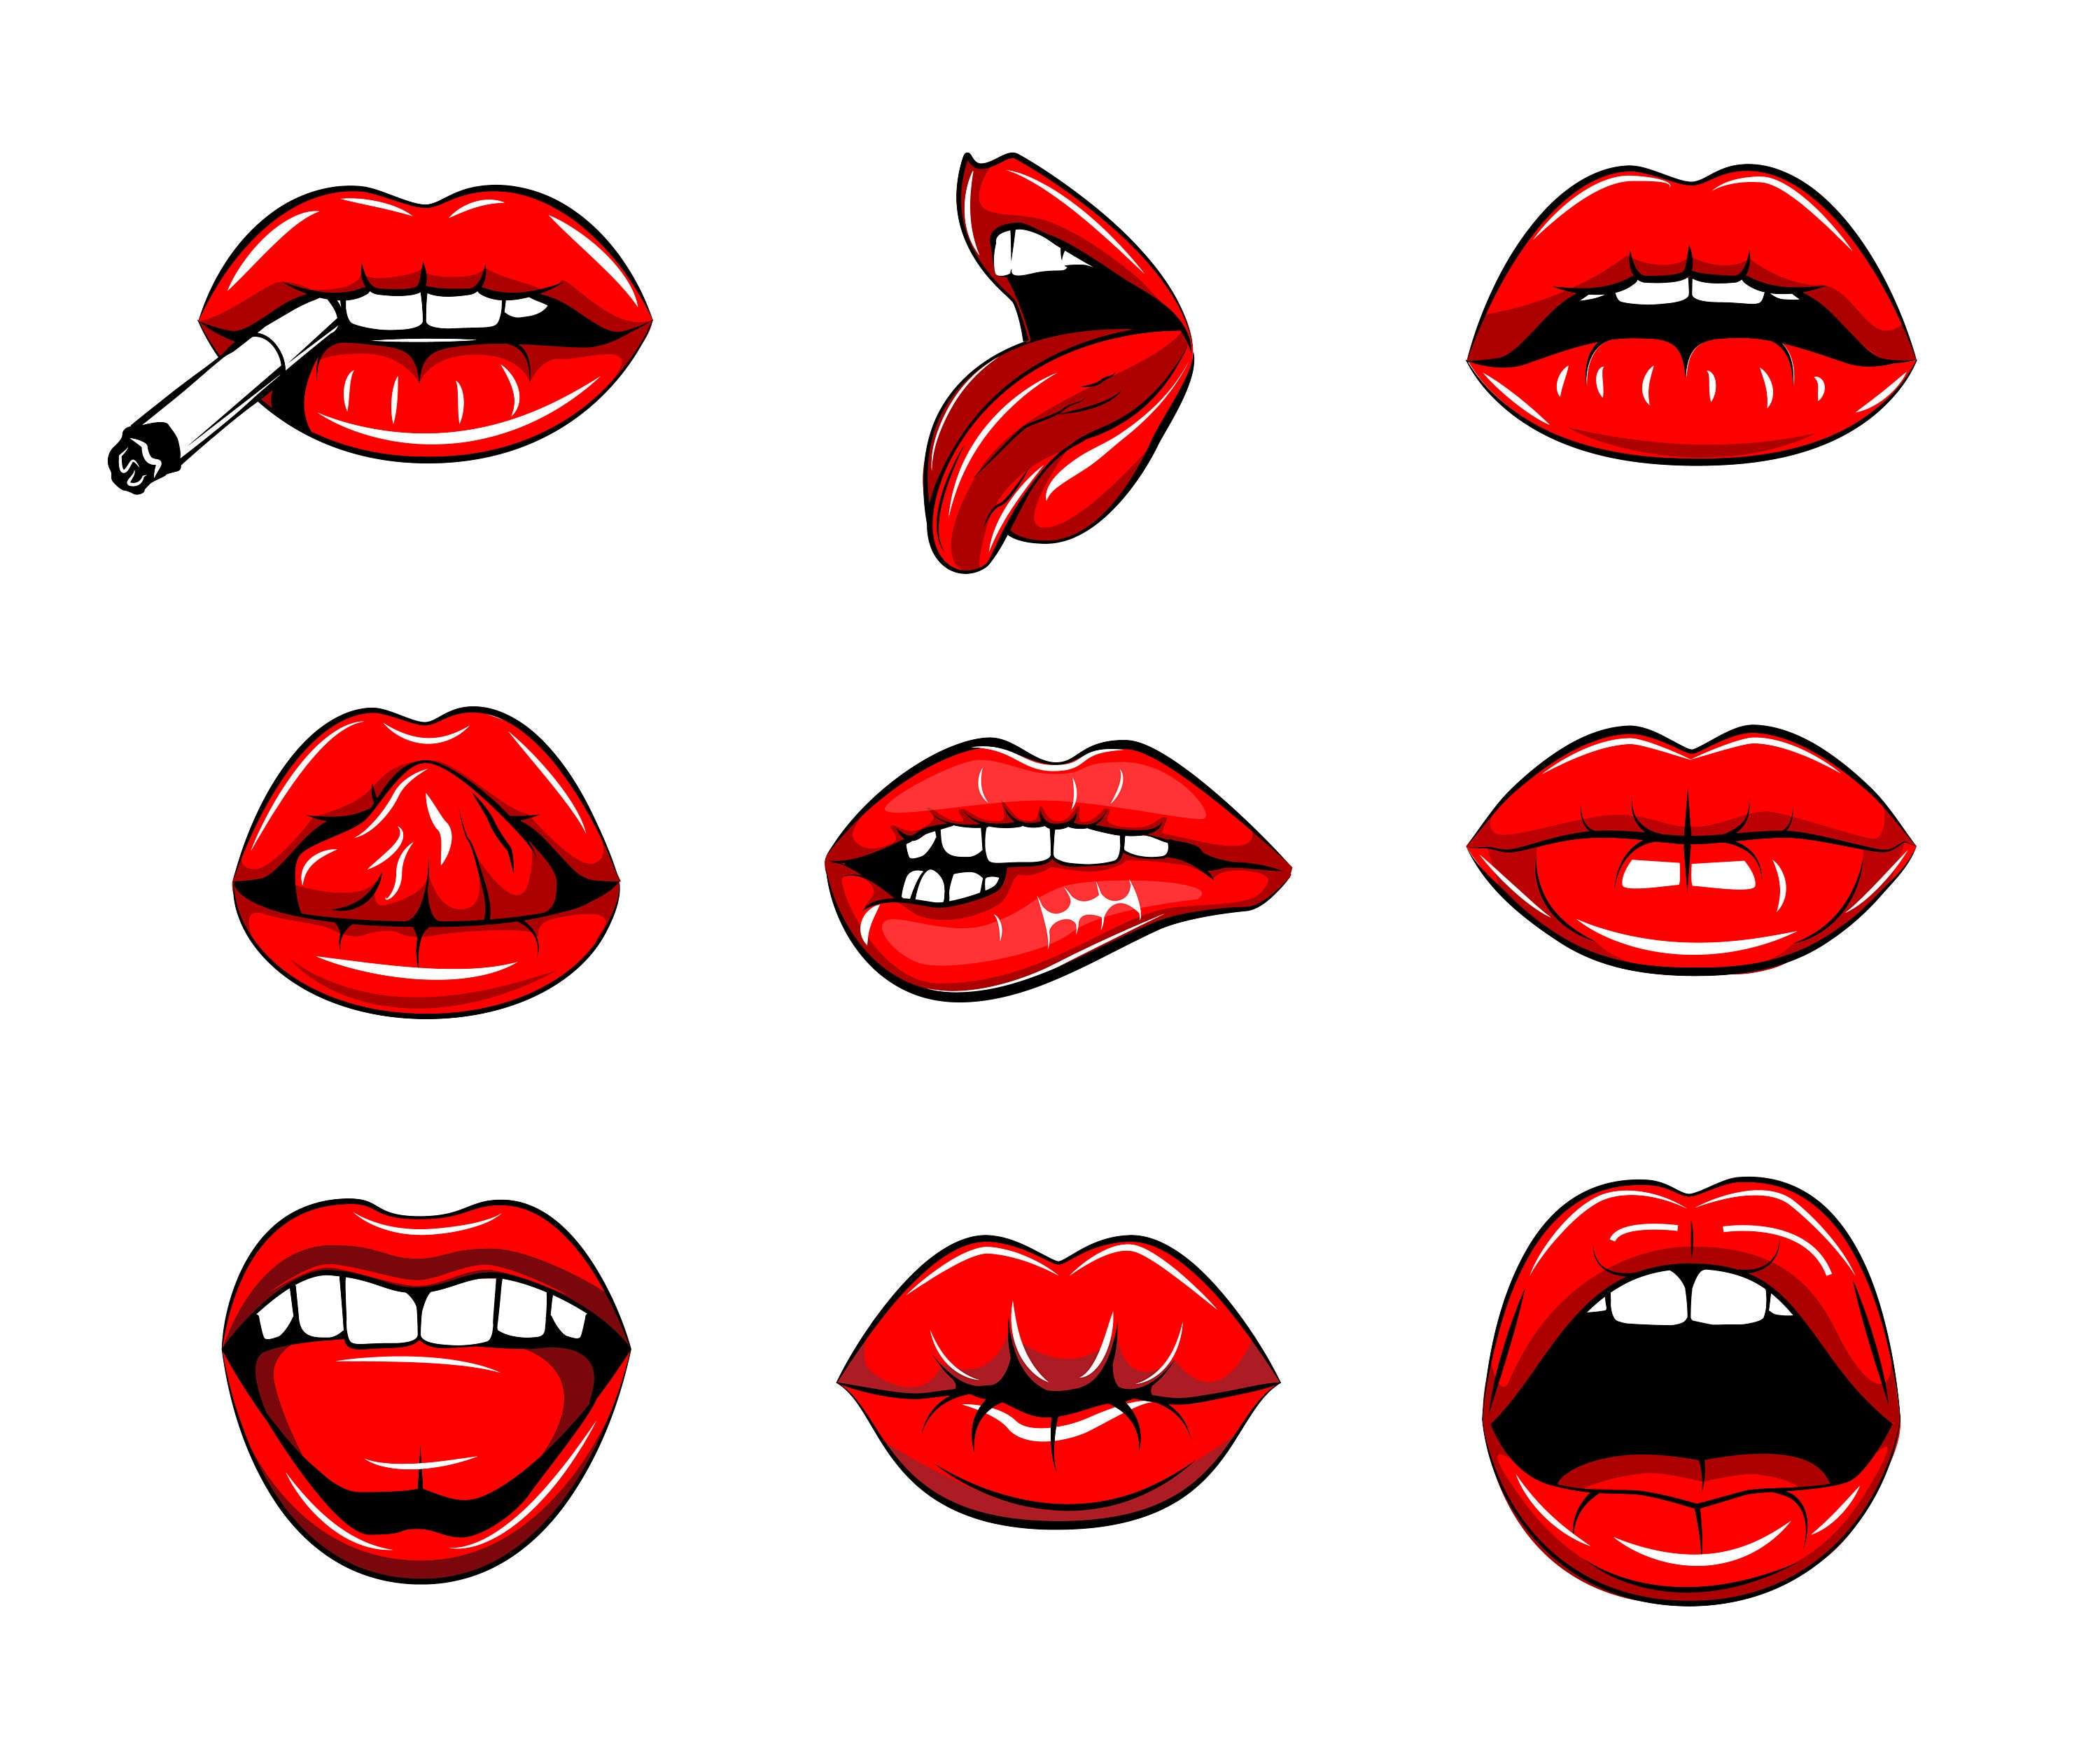 sexy lips svg kiss red lipstick female mouth with teeth etsy rh etsy com Teeth Vector Lips Vector